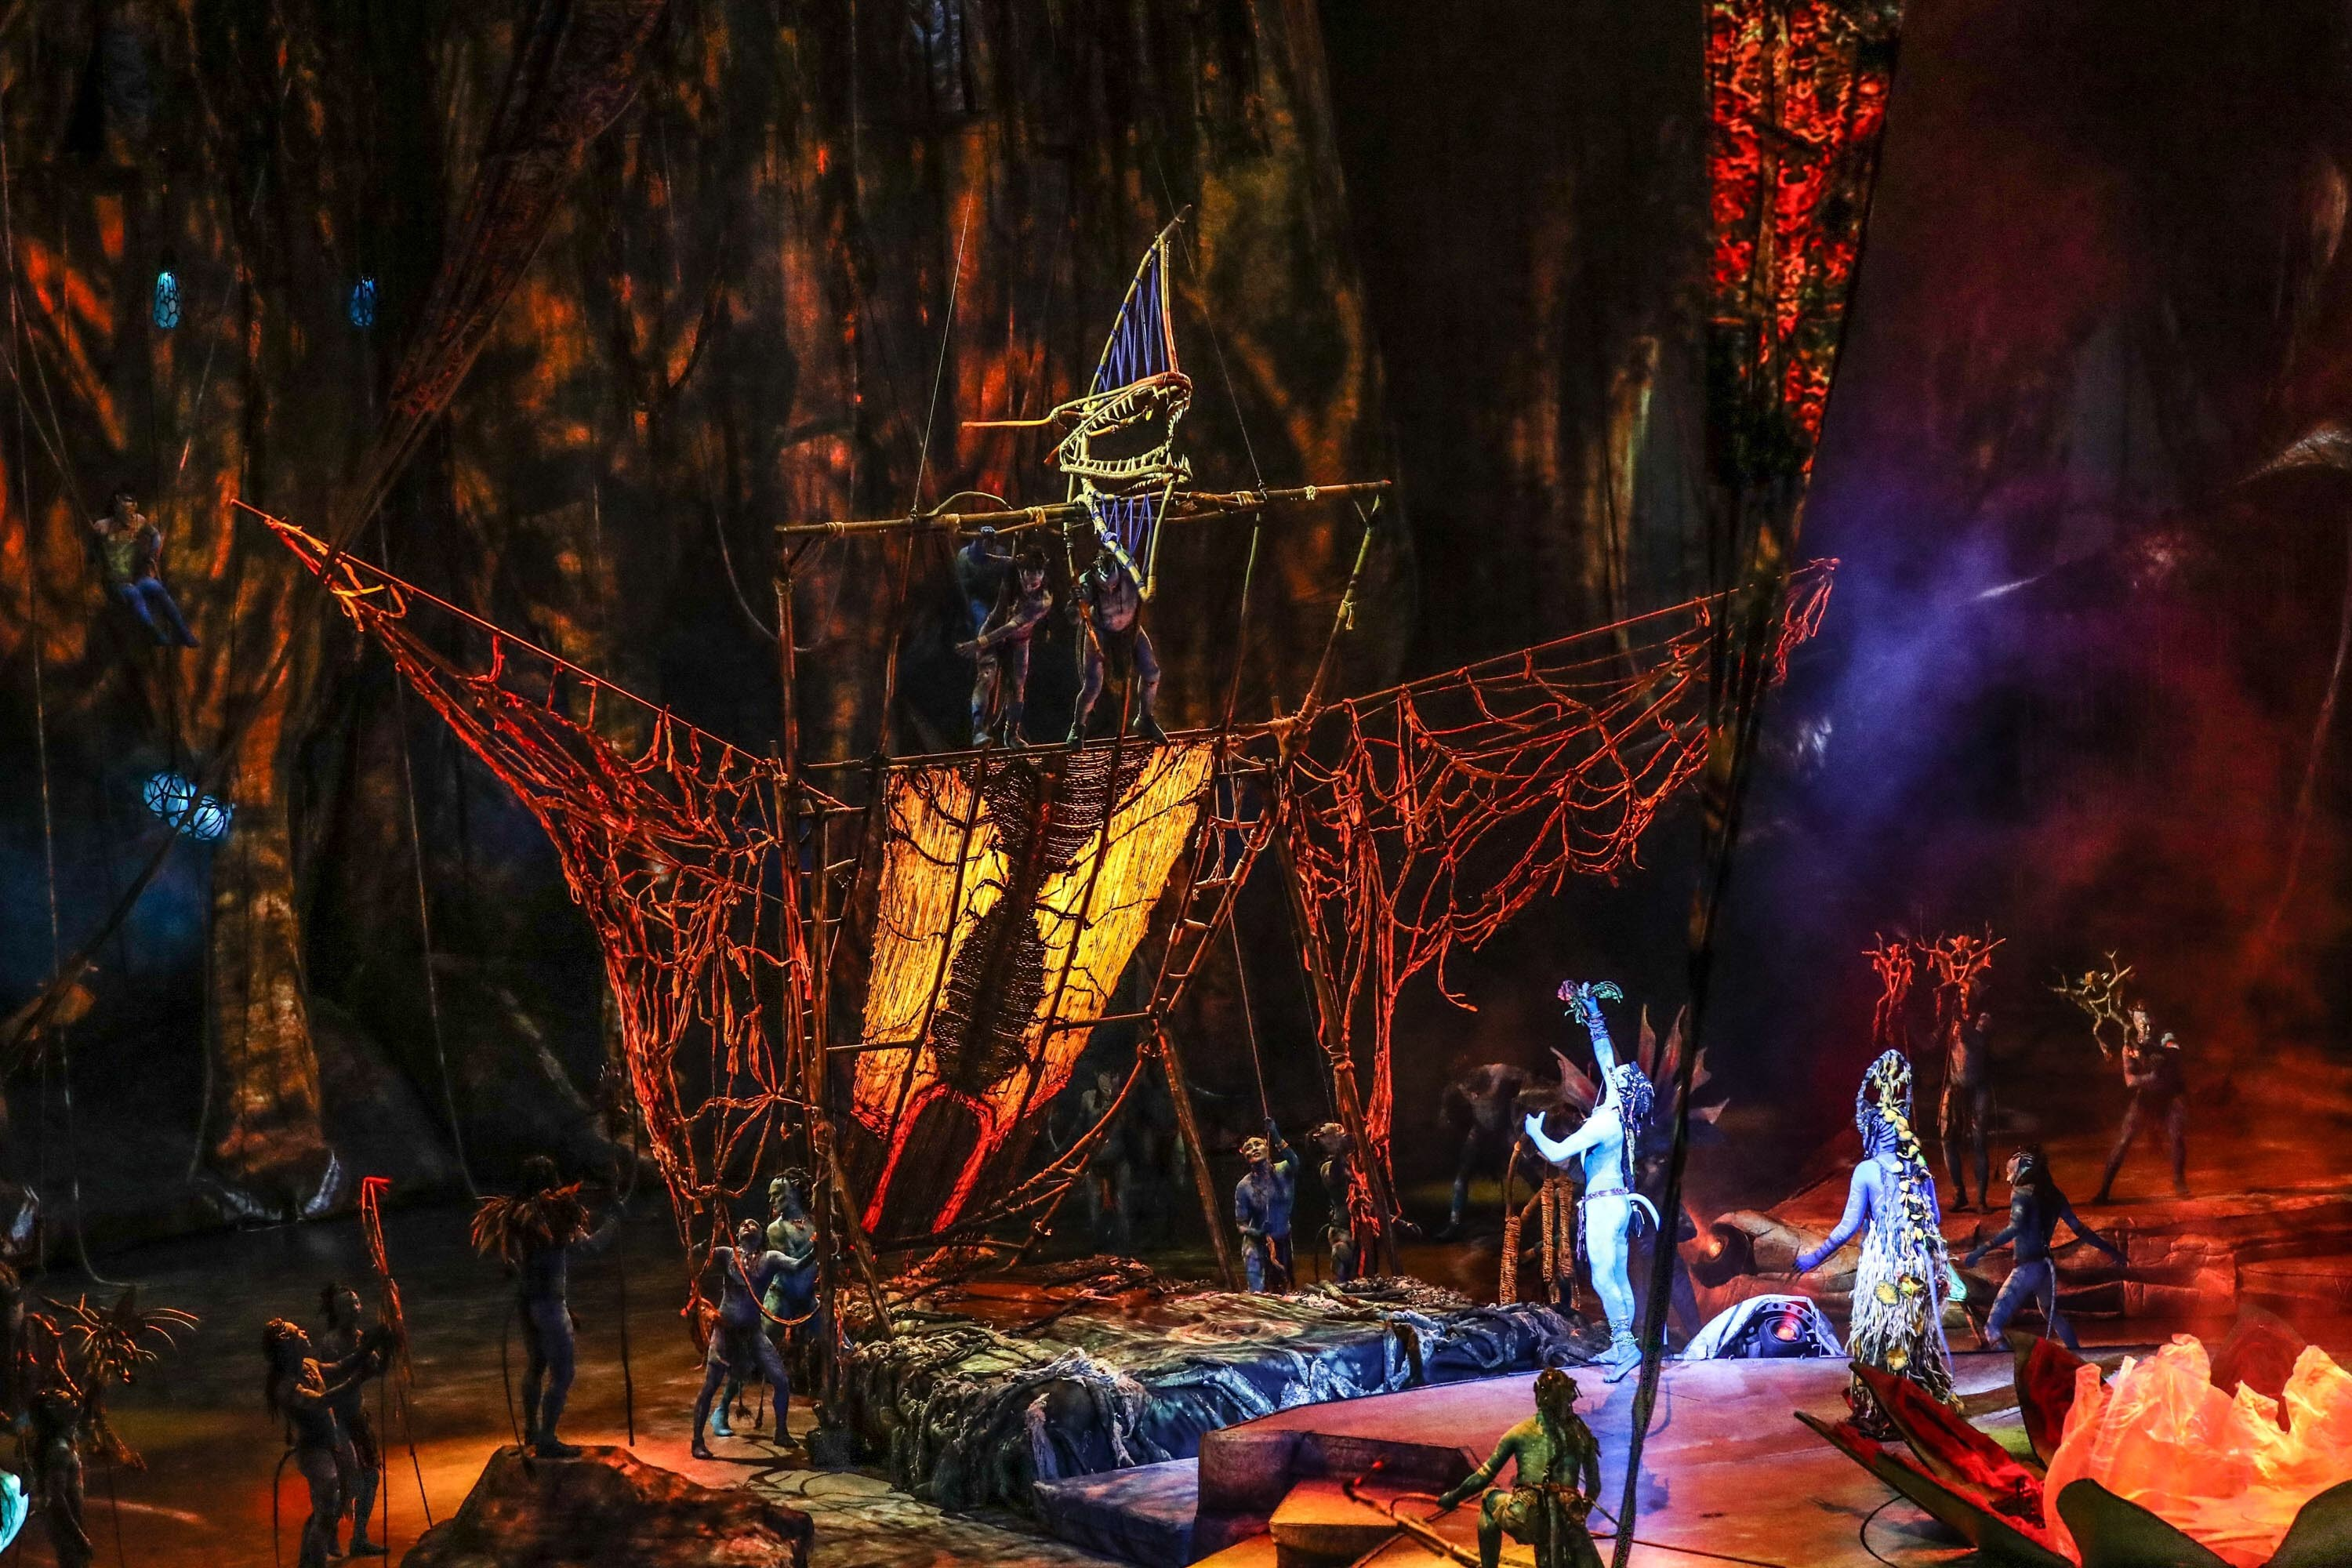 Cirque du Soleil: The Circus That Took Over The World